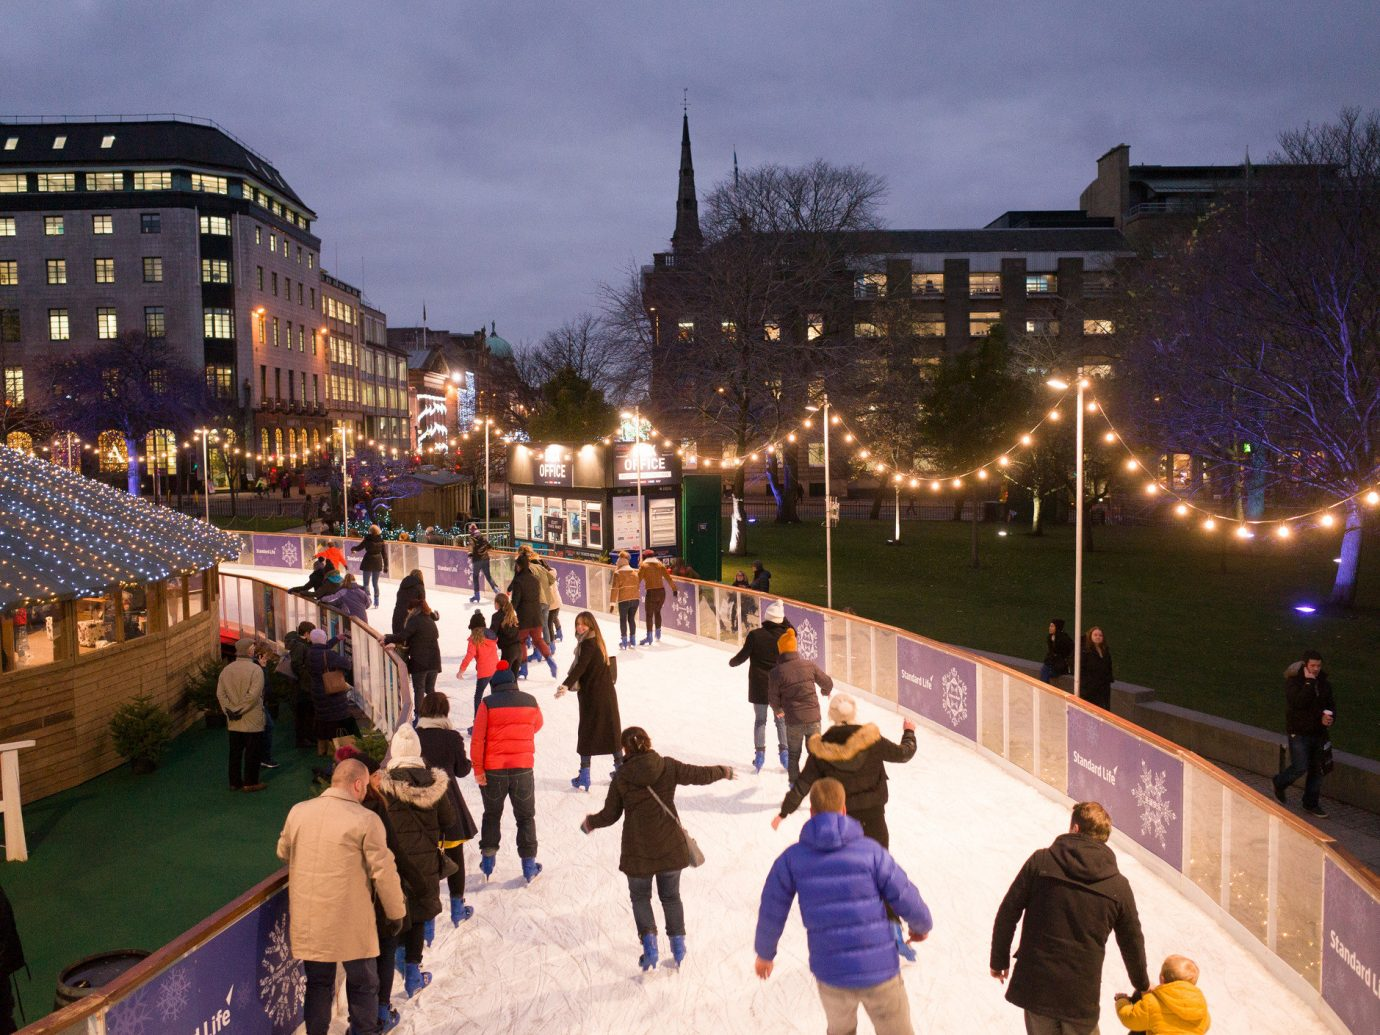 Trip Ideas outdoor person crowd City night rink ice rink town square evening tourism plaza cityscape line